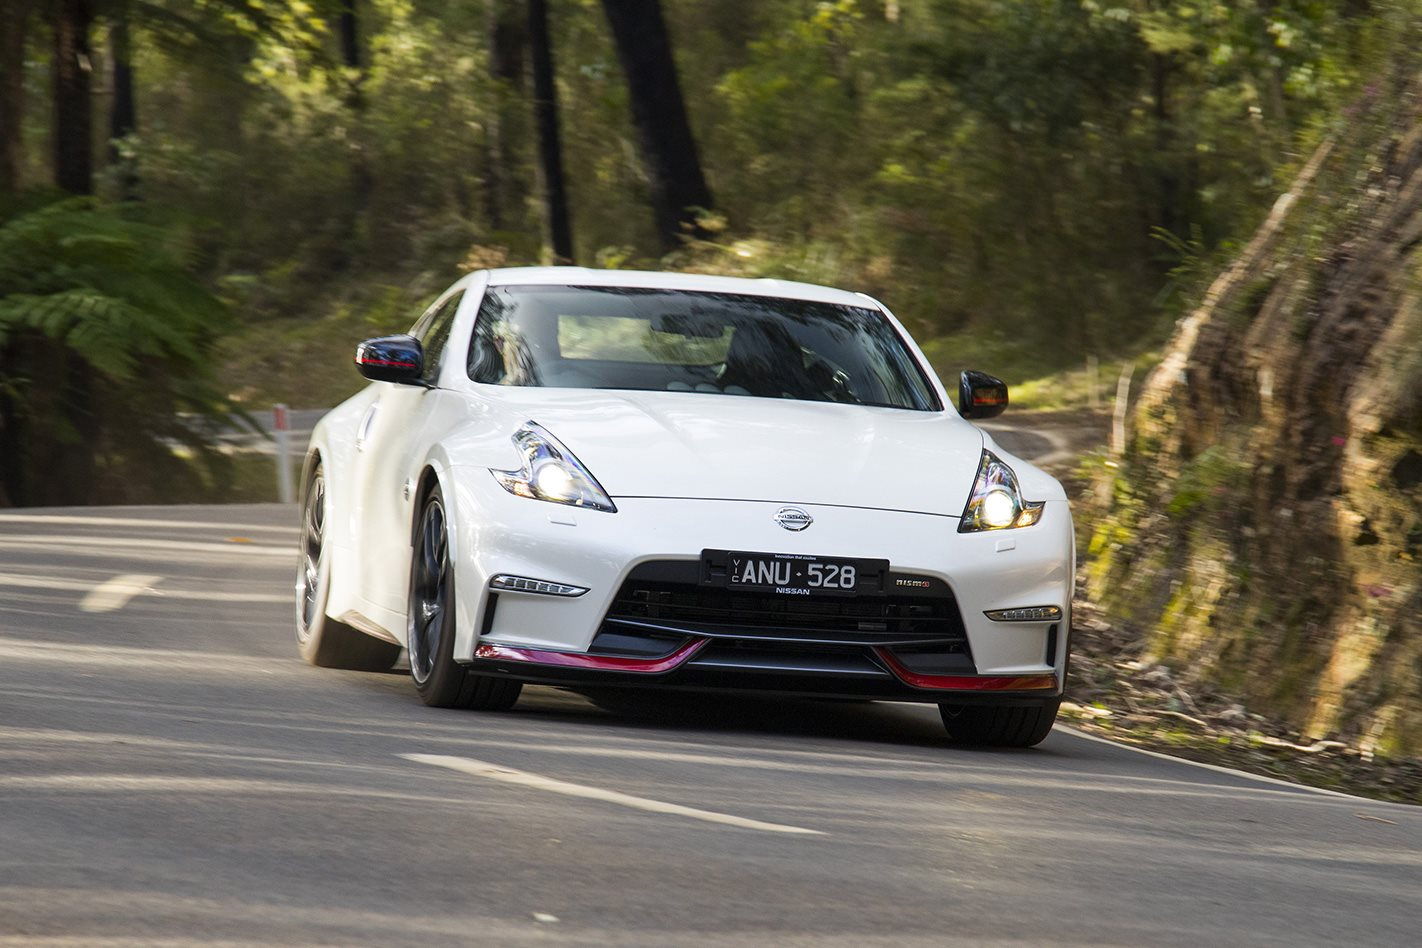 2018 Nissan 370Z Nismo front